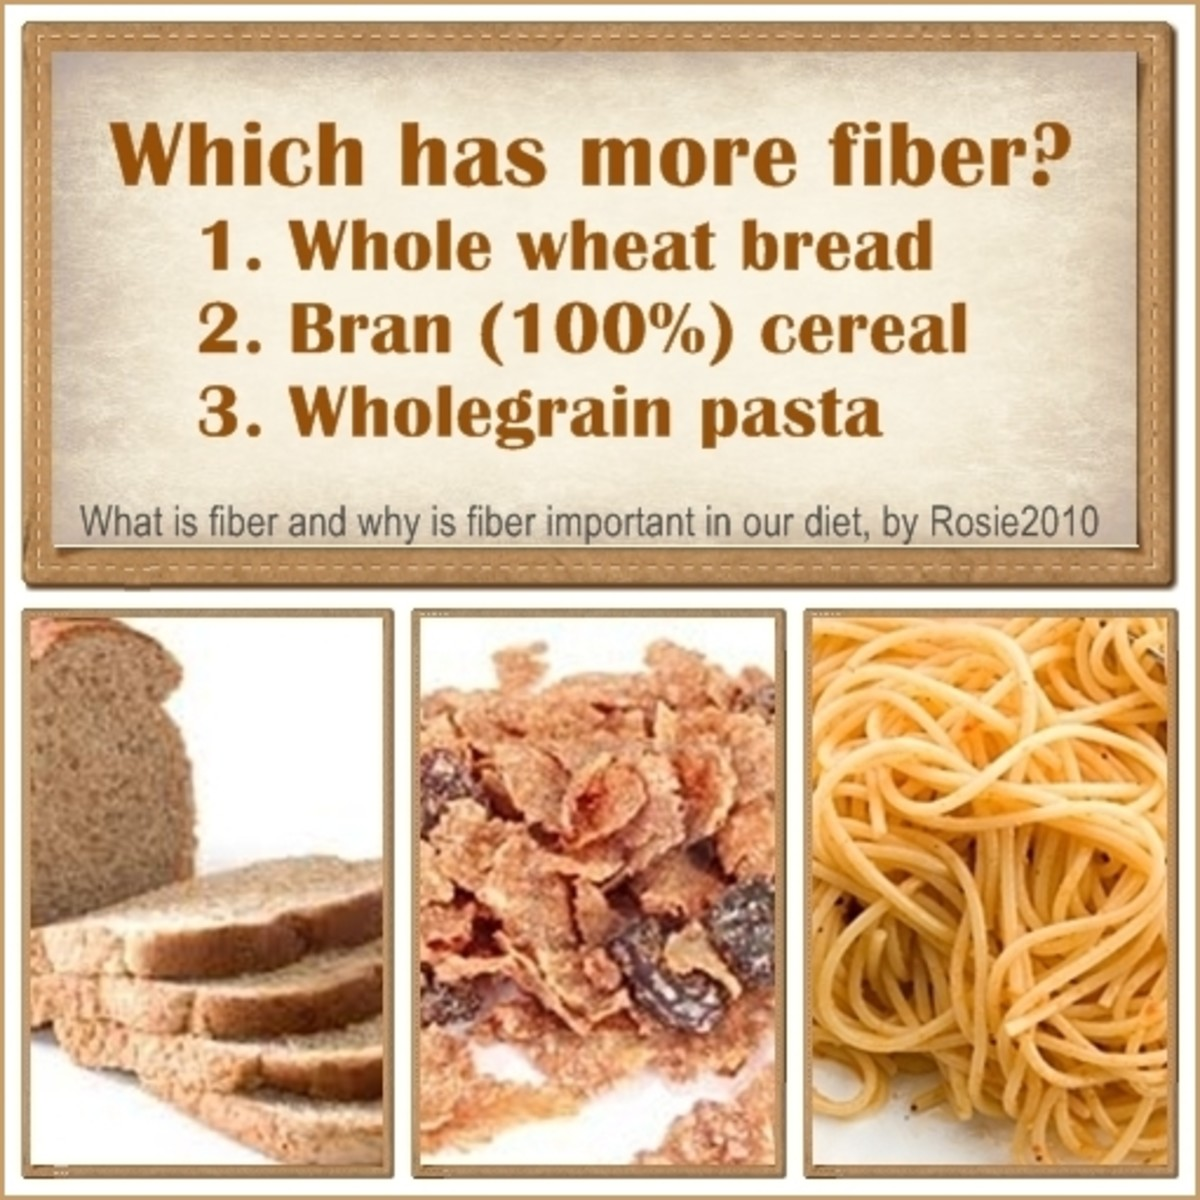 What is Fiber and Why is Fiber Important in our Diet, by Rosie2010 - Answer:  #2 Bran (100%) cereal